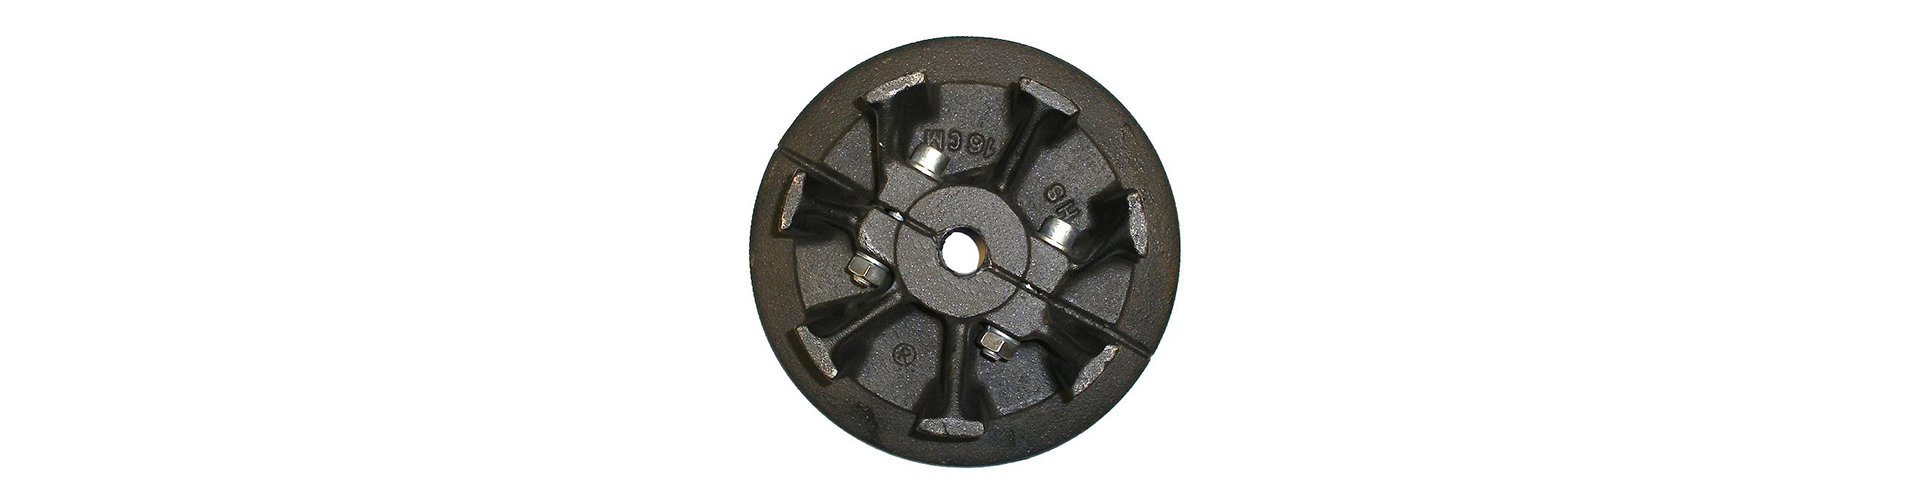 Friction Drive Sprockets